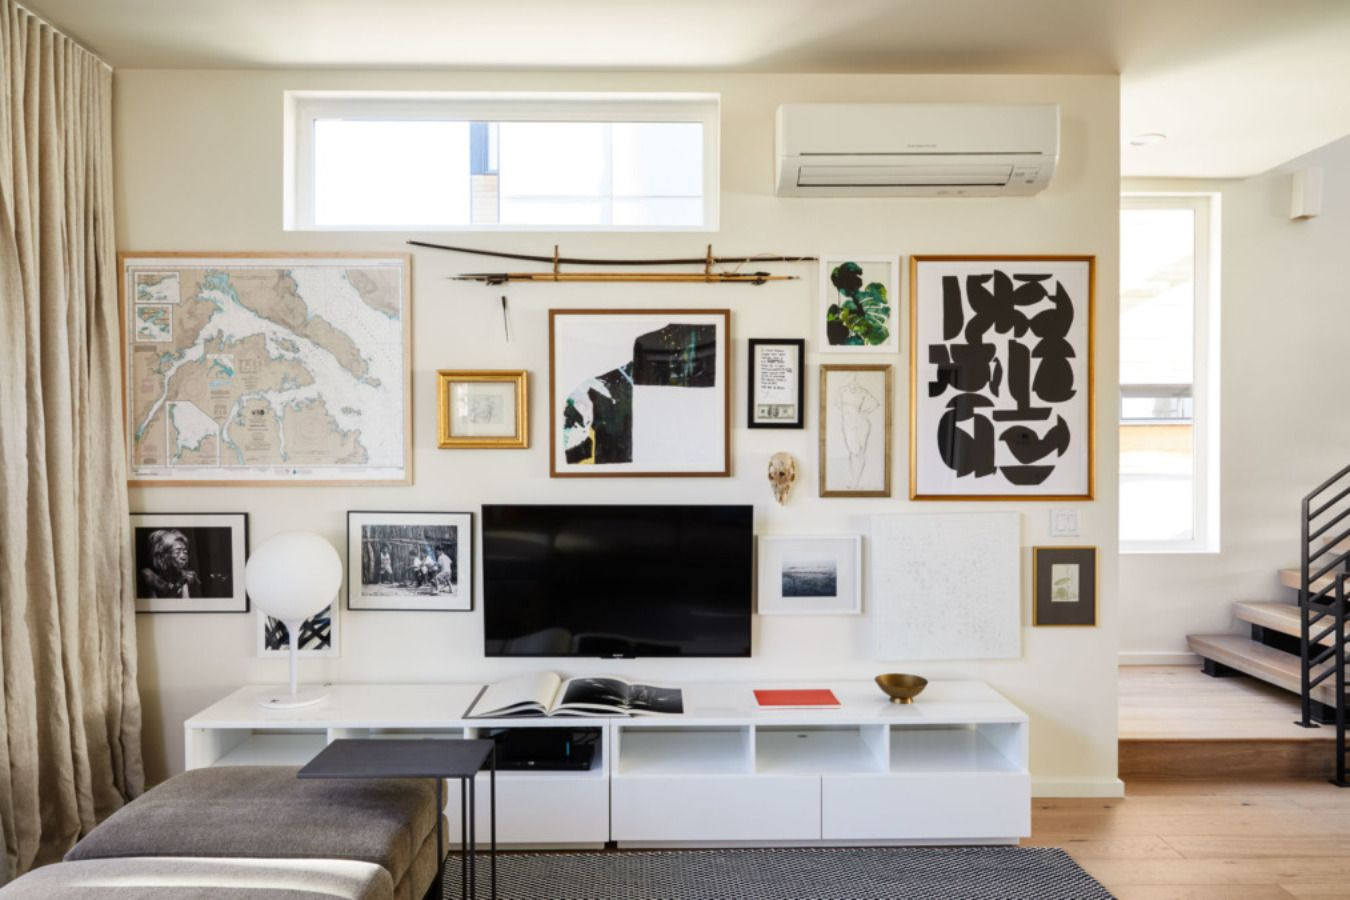 The family's gallery wall is constantly morphing, incorporating everything from sketches, photographs, spears, maps, and even animal skulls!